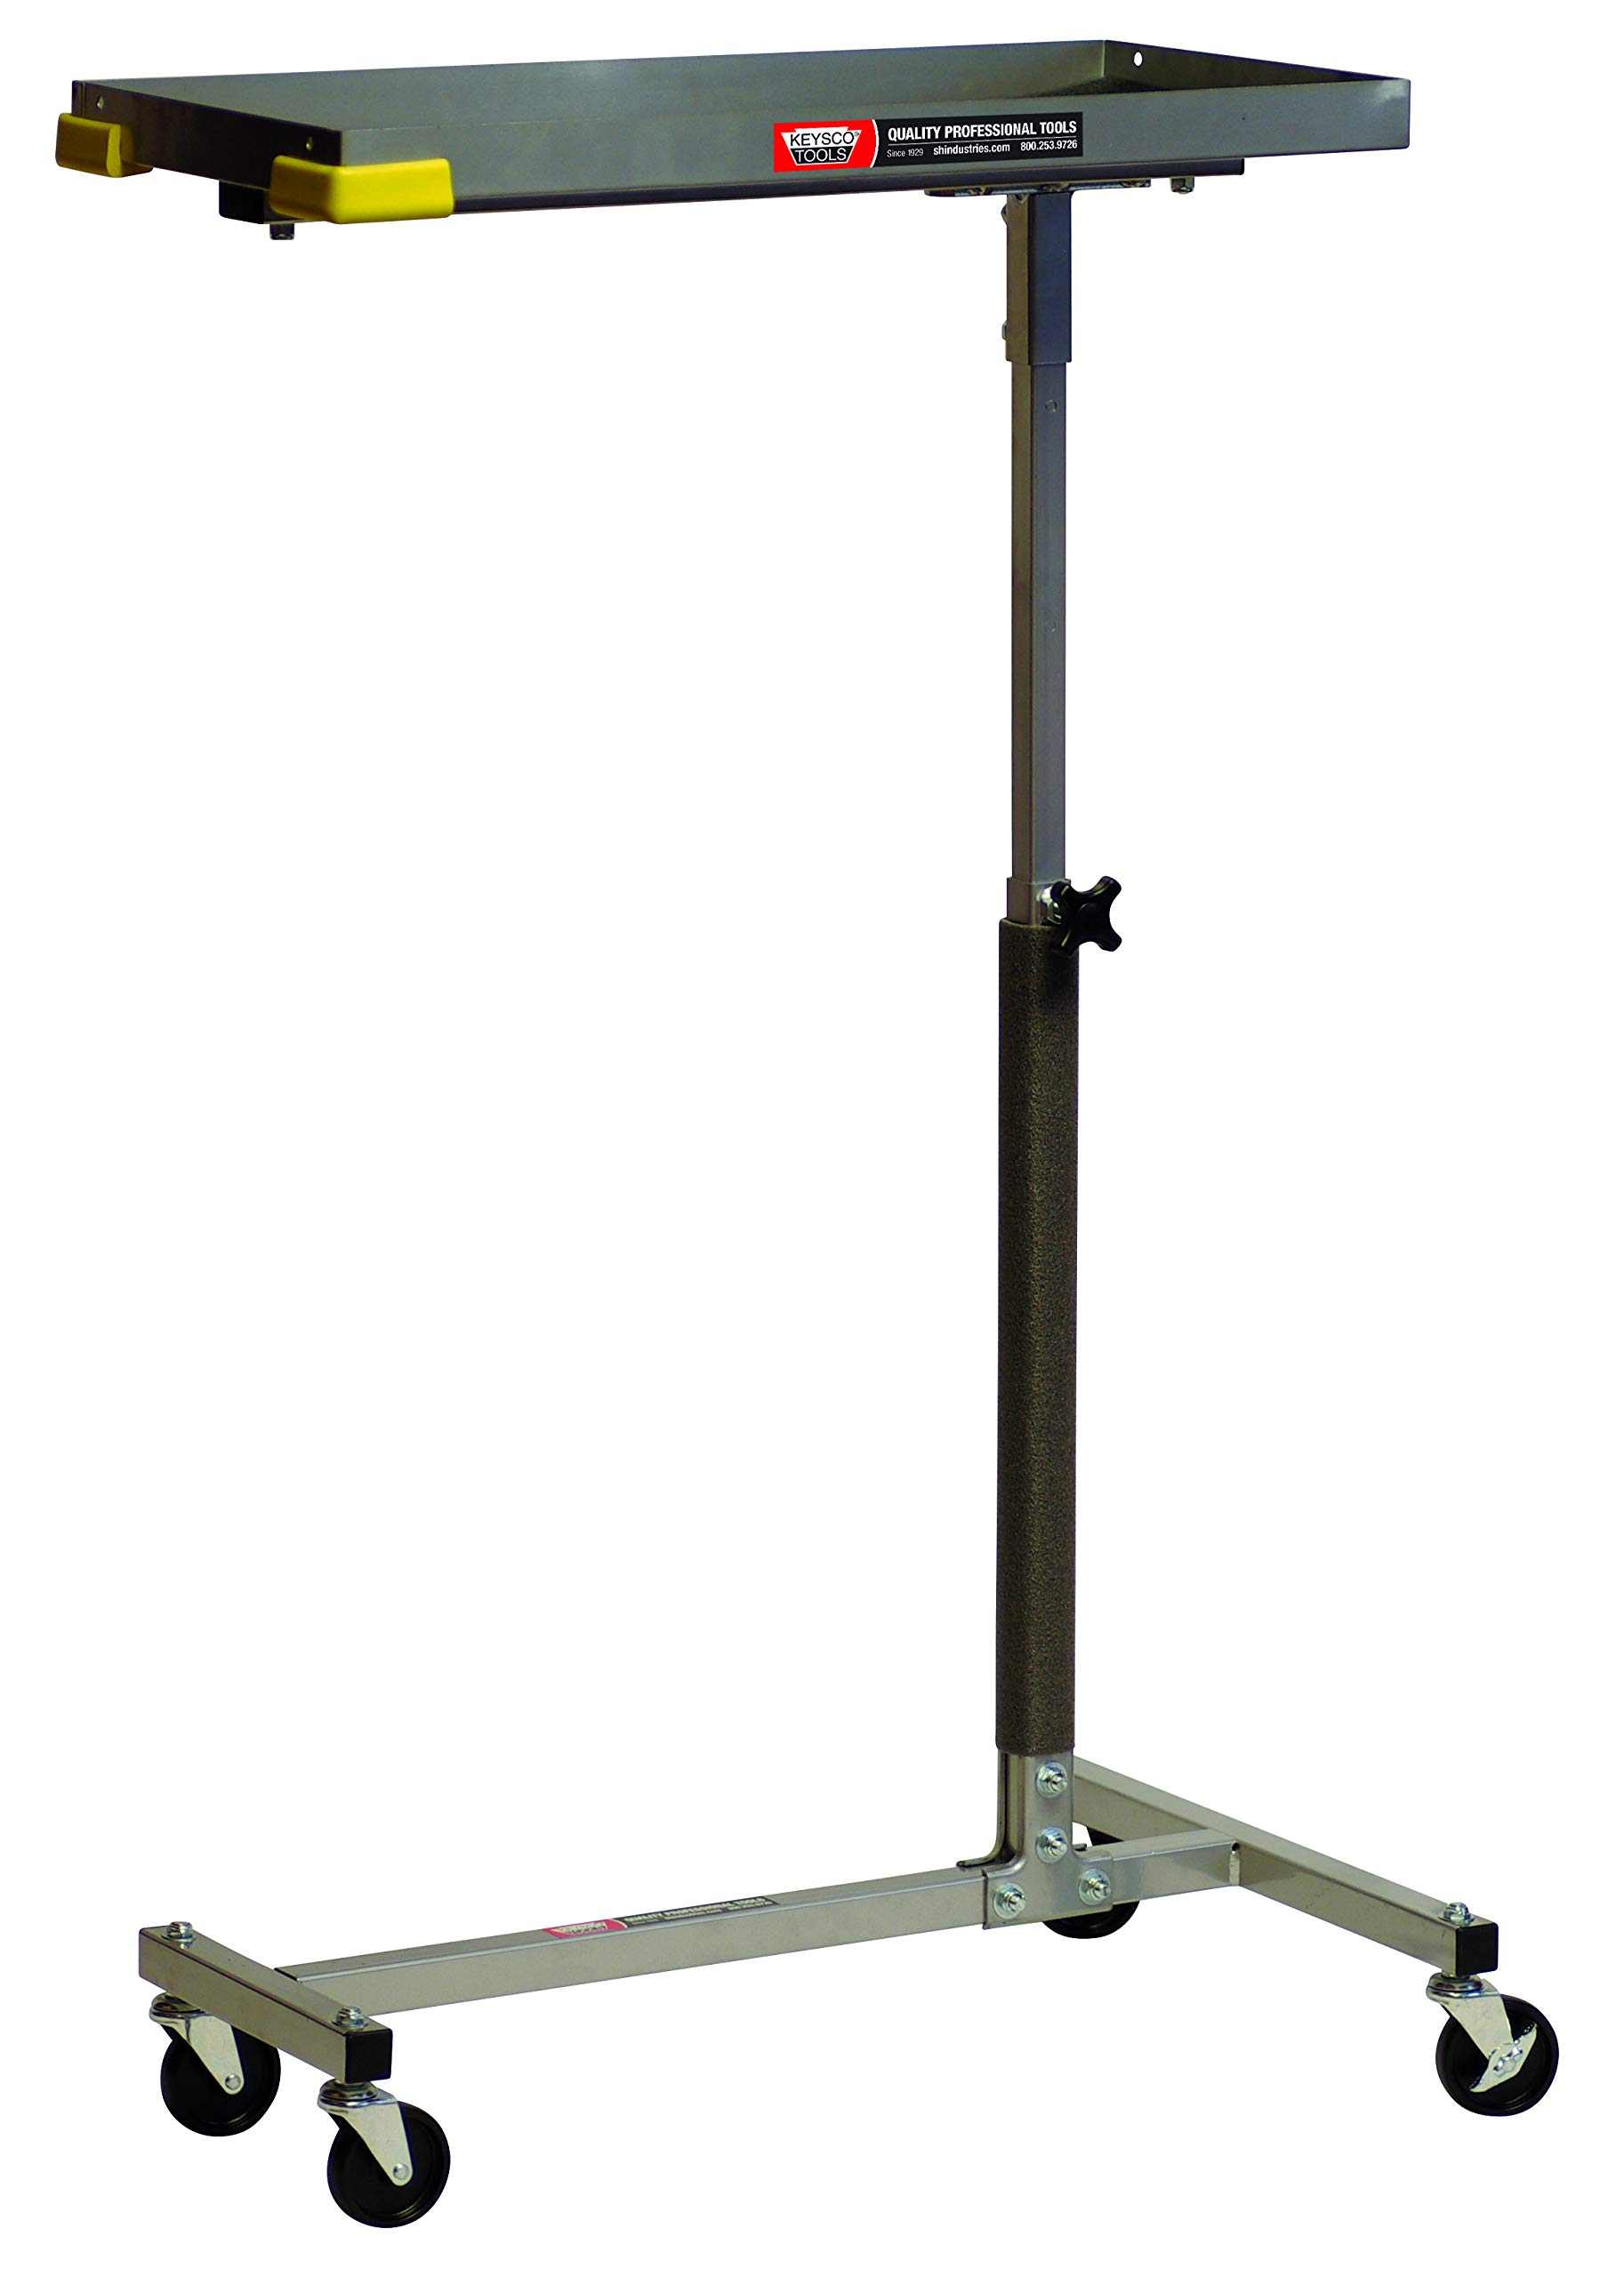 Keysco 78035 Mechanics Mobile Tool Cart (Metal) by KEYSCO (Image #5)